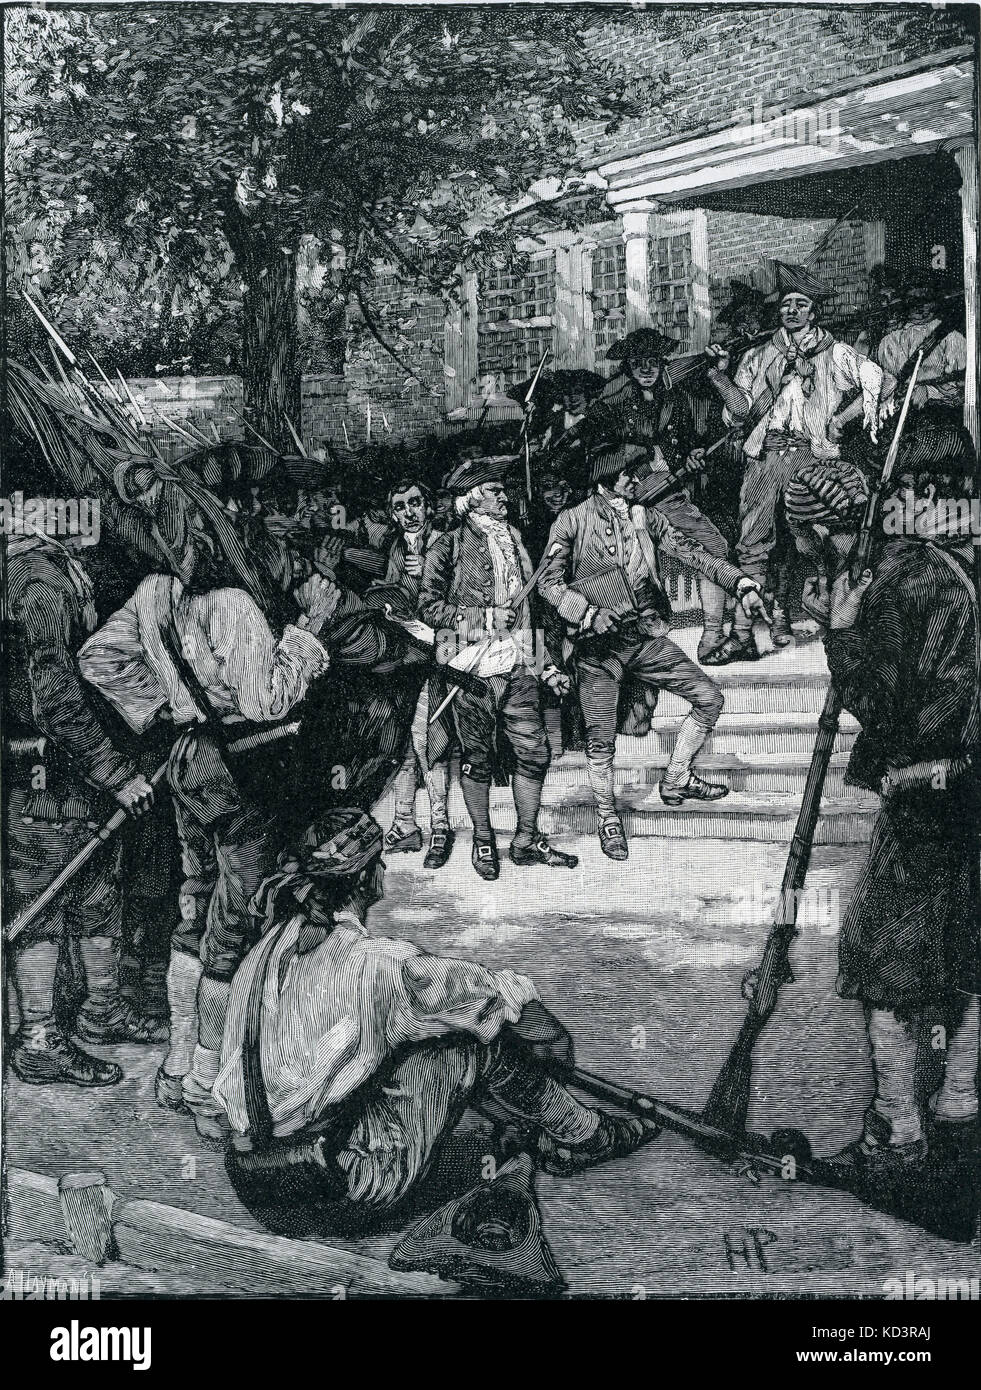 Shays' mob in possession of a courthouse. Rebellion by the people demanding paper money in Massachusetts led - Stock Image